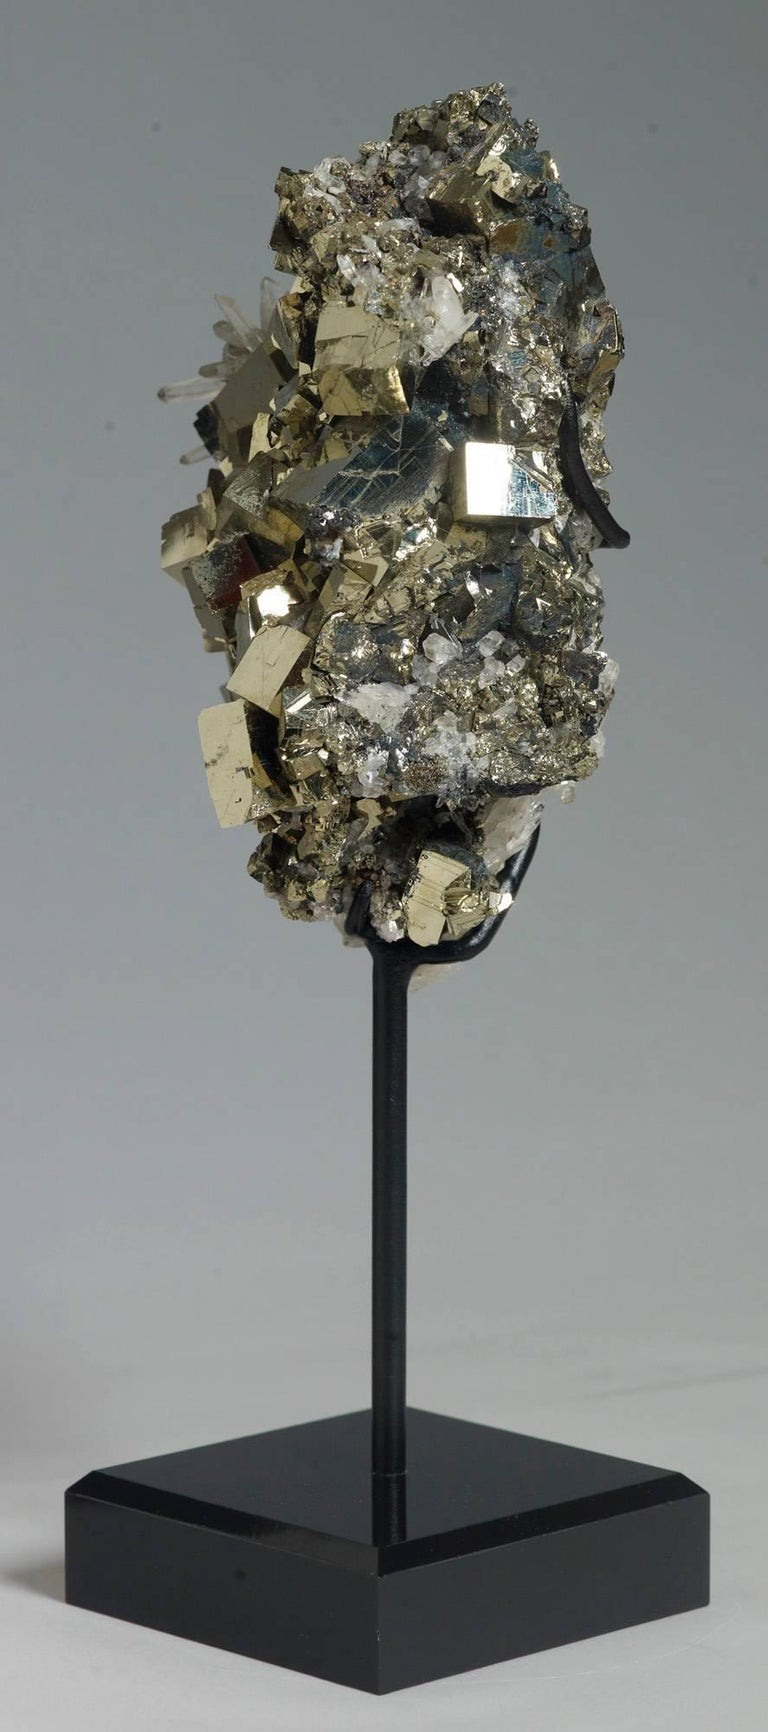 Pyrite and Quartz Crystals For Sale 2